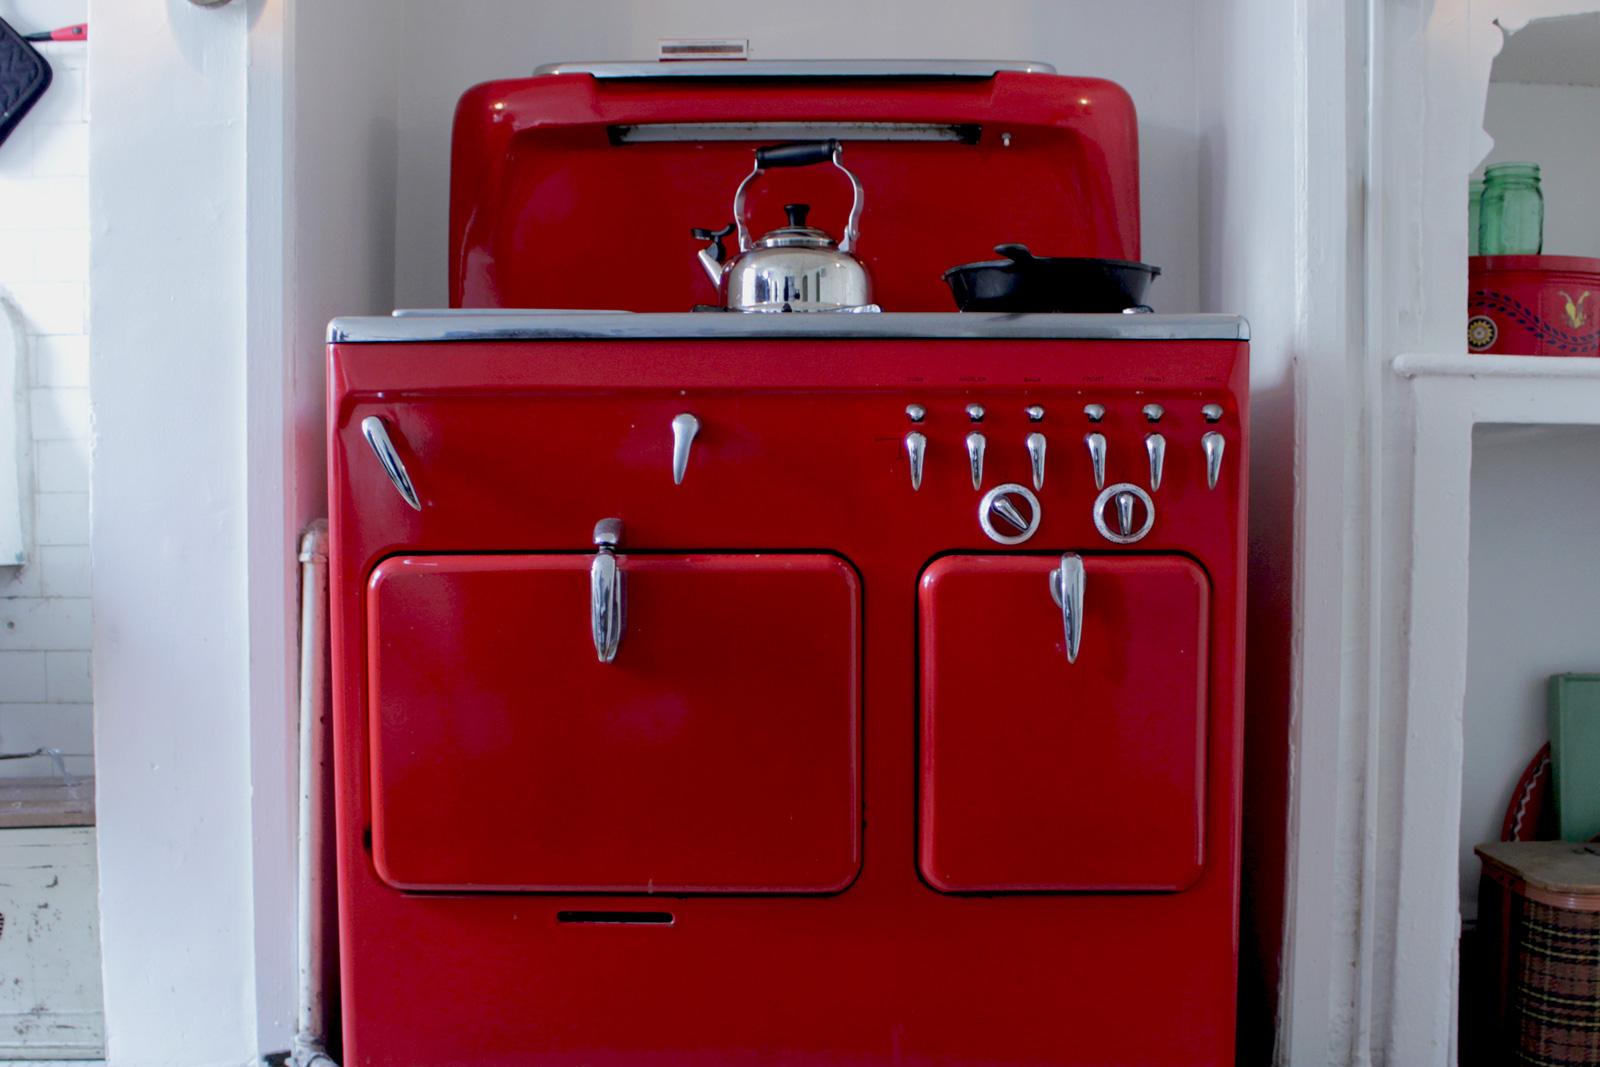 smart options kitchen flooring flooring for kitchen Red vintage stove in a home kitchen